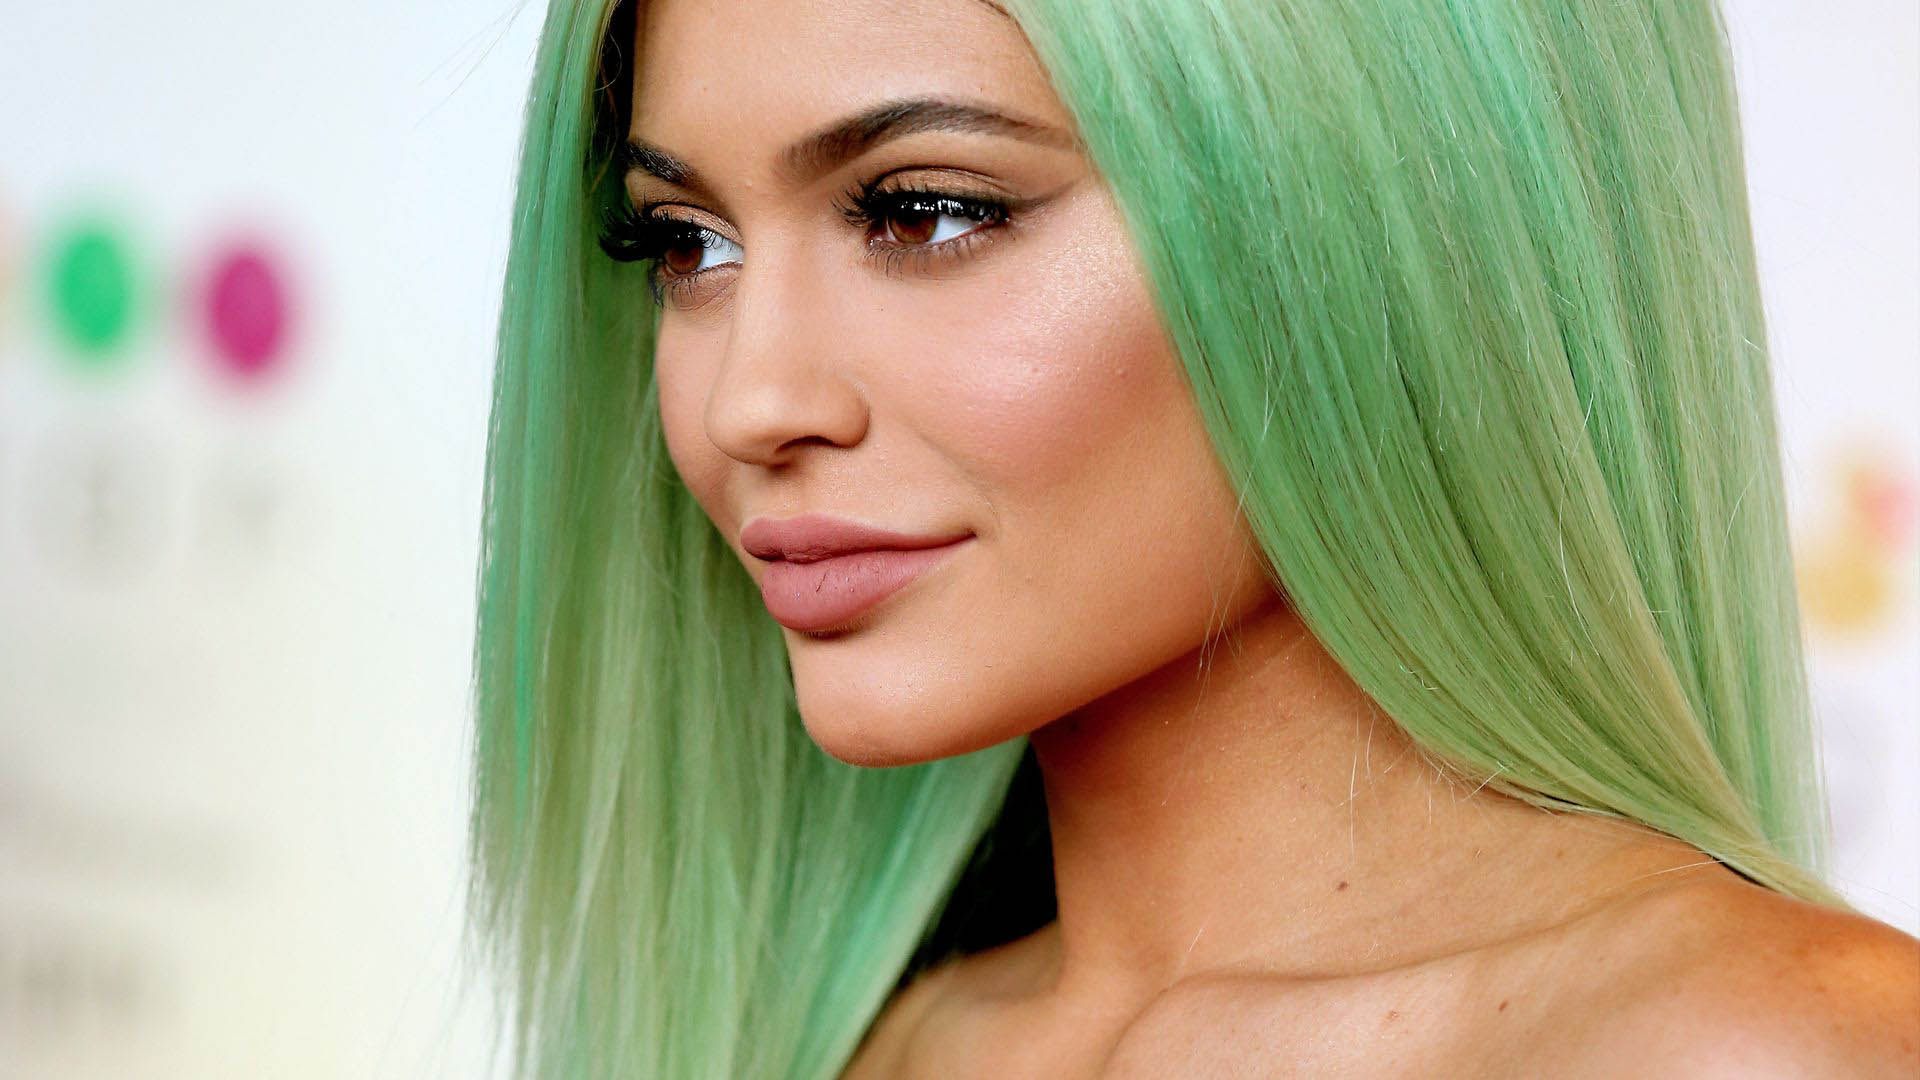 Kylie Jenner Wallpapers High Quality Download Free